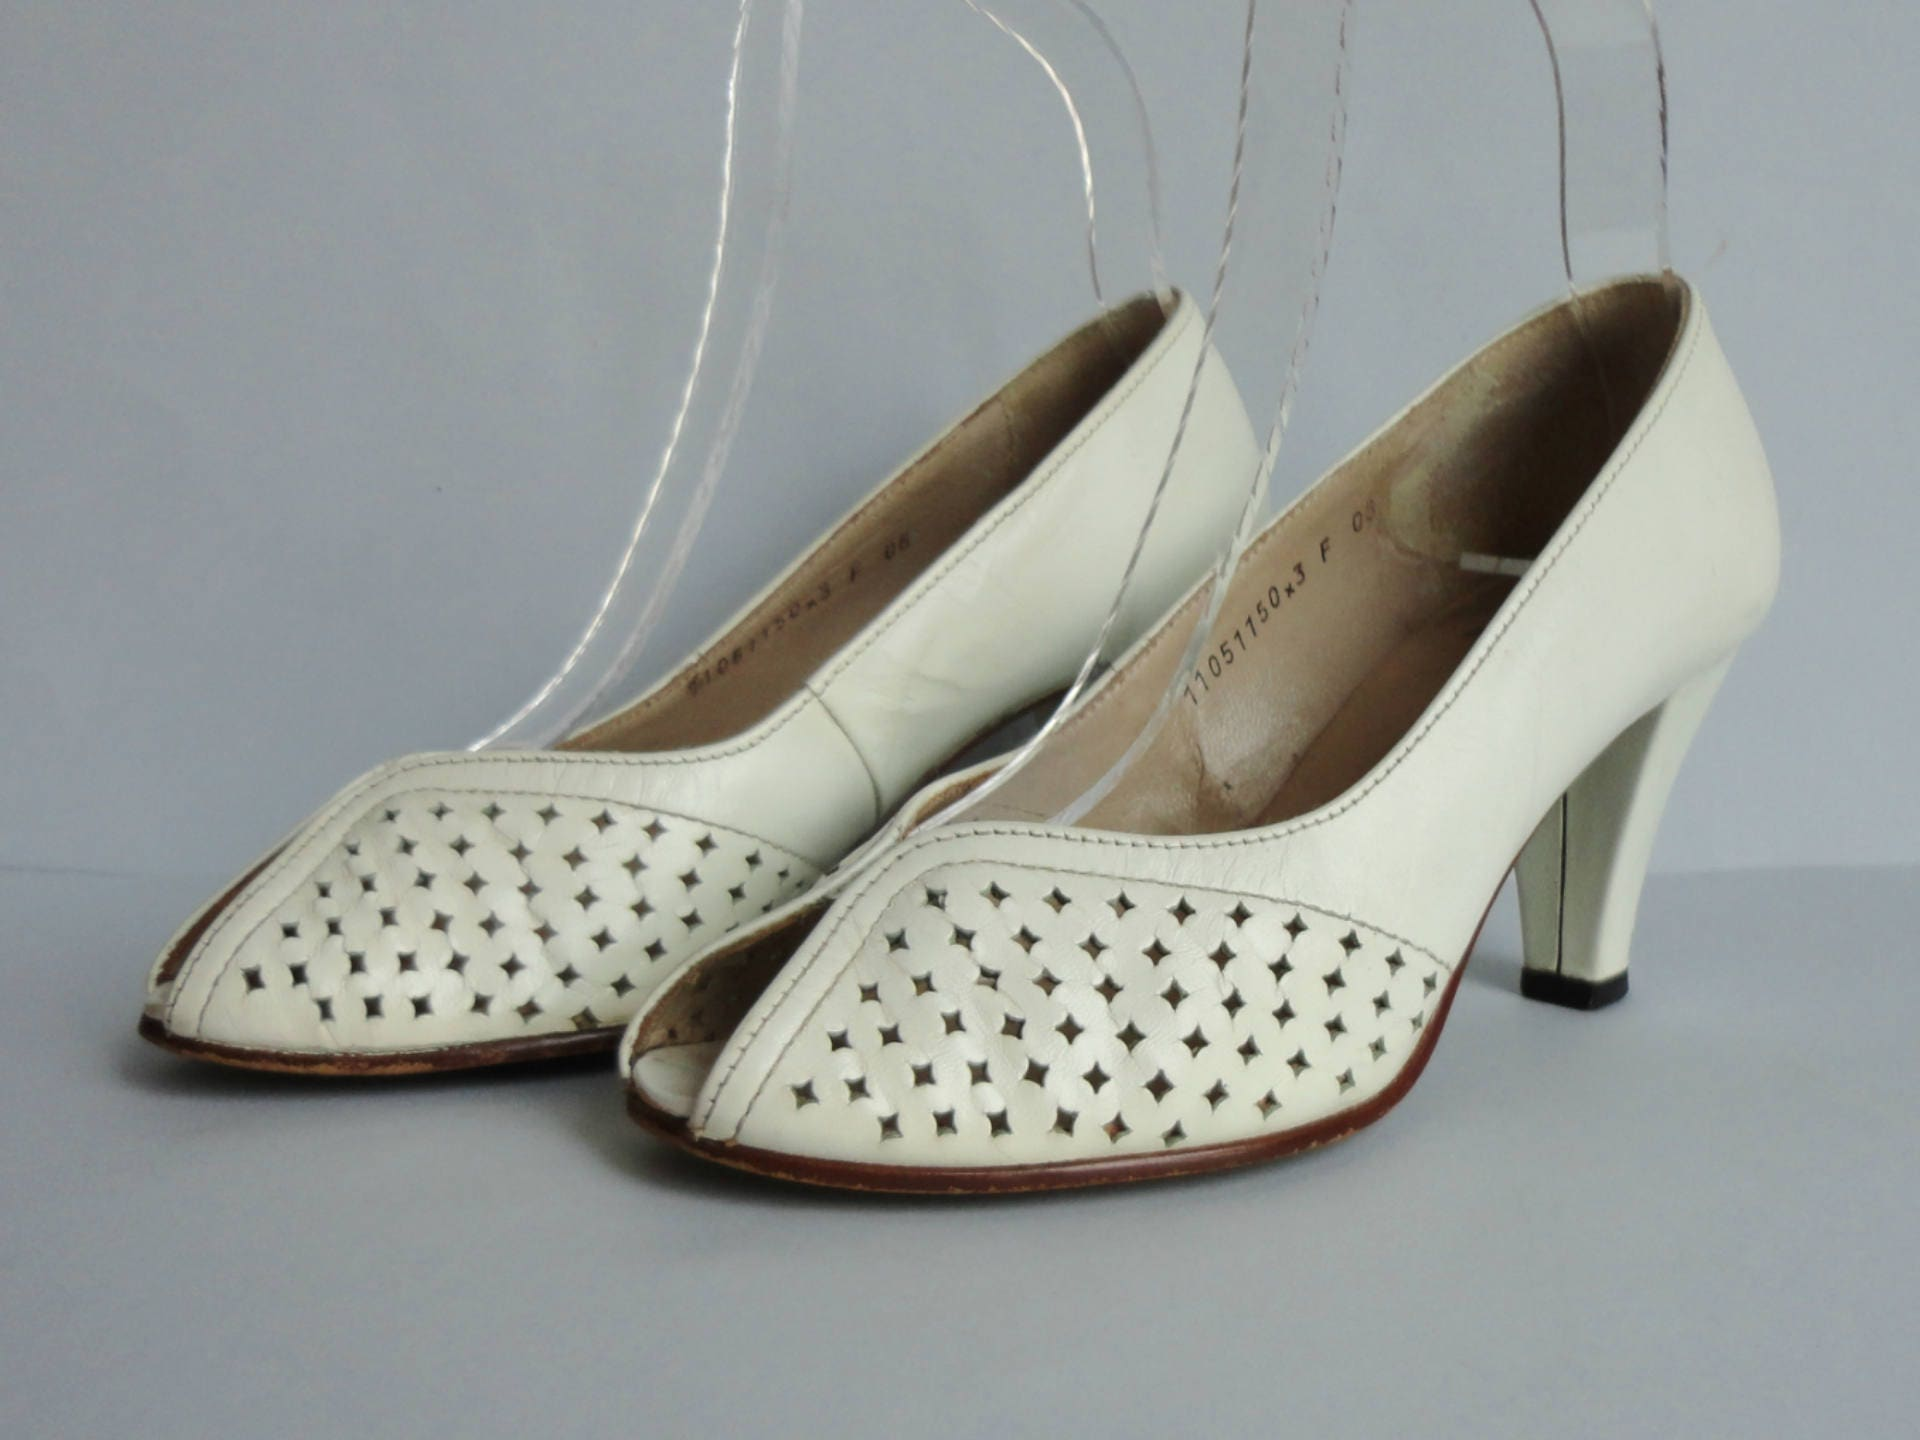 White Vintage Pumps Salamander Leather Shoes Peeptoe Size EU 36 Made In Western Germany